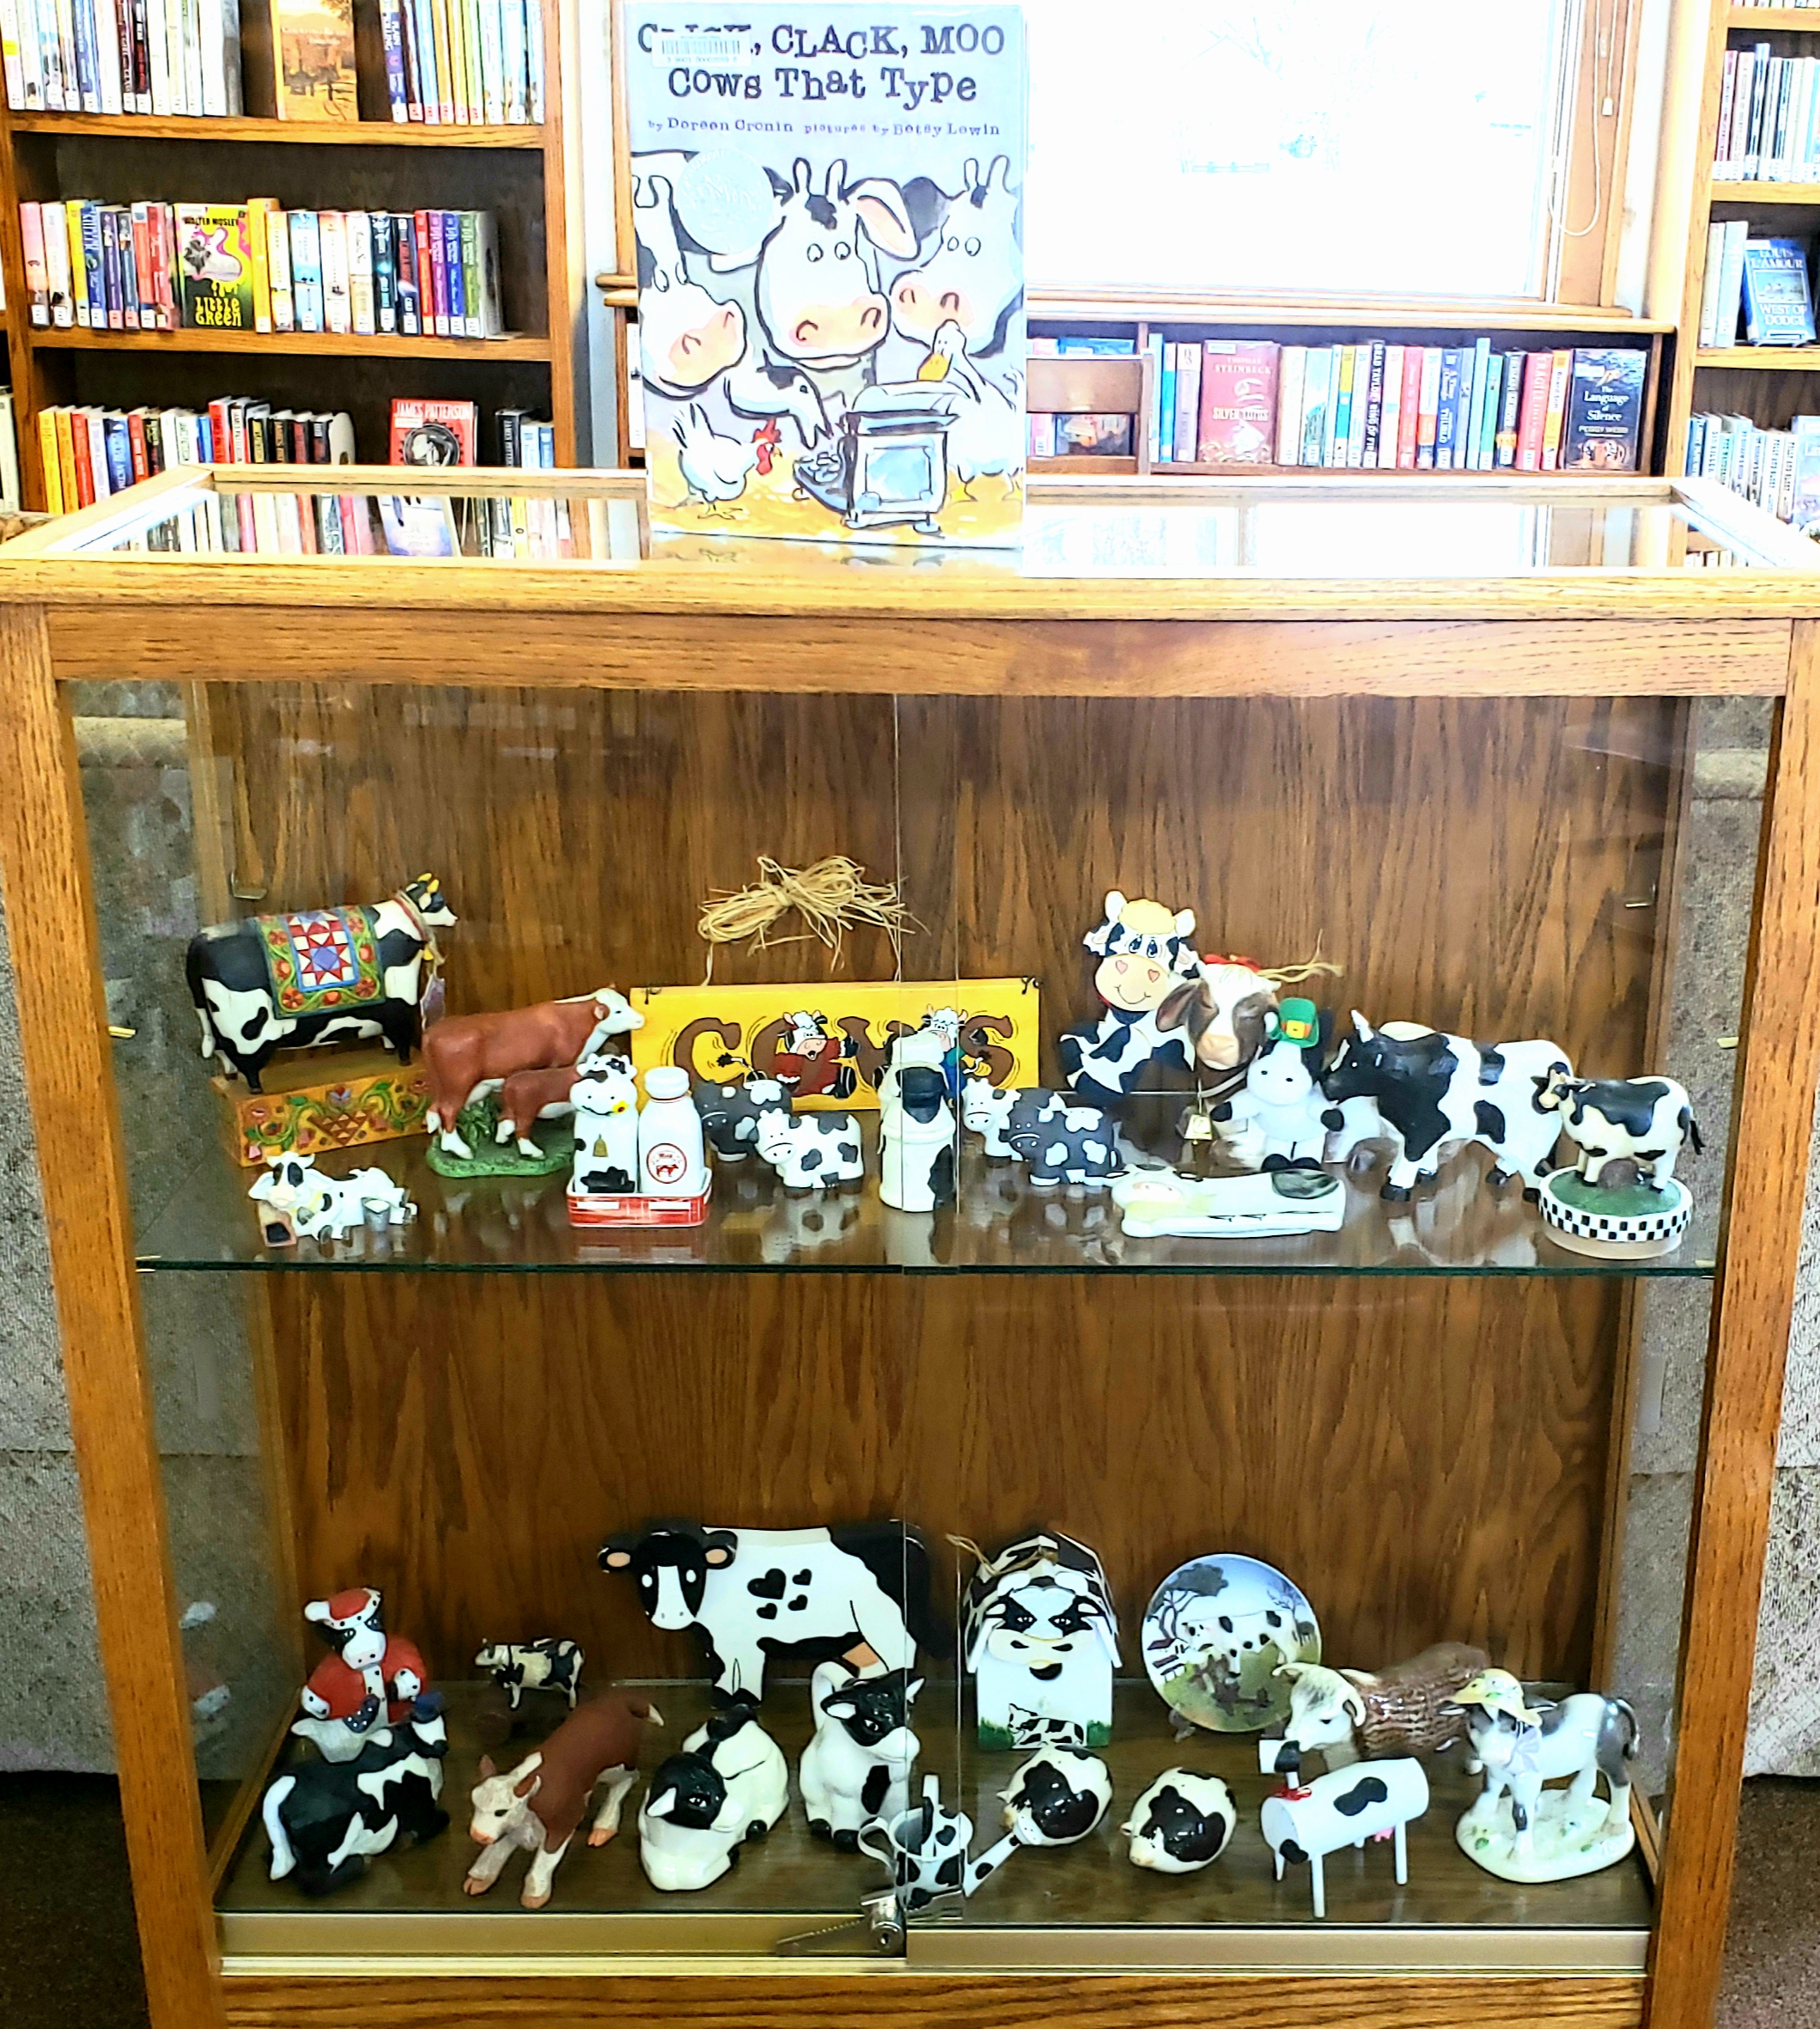 We regularly display local collections from our patrons.  If you have a collection that you would like to share, please contact our library.